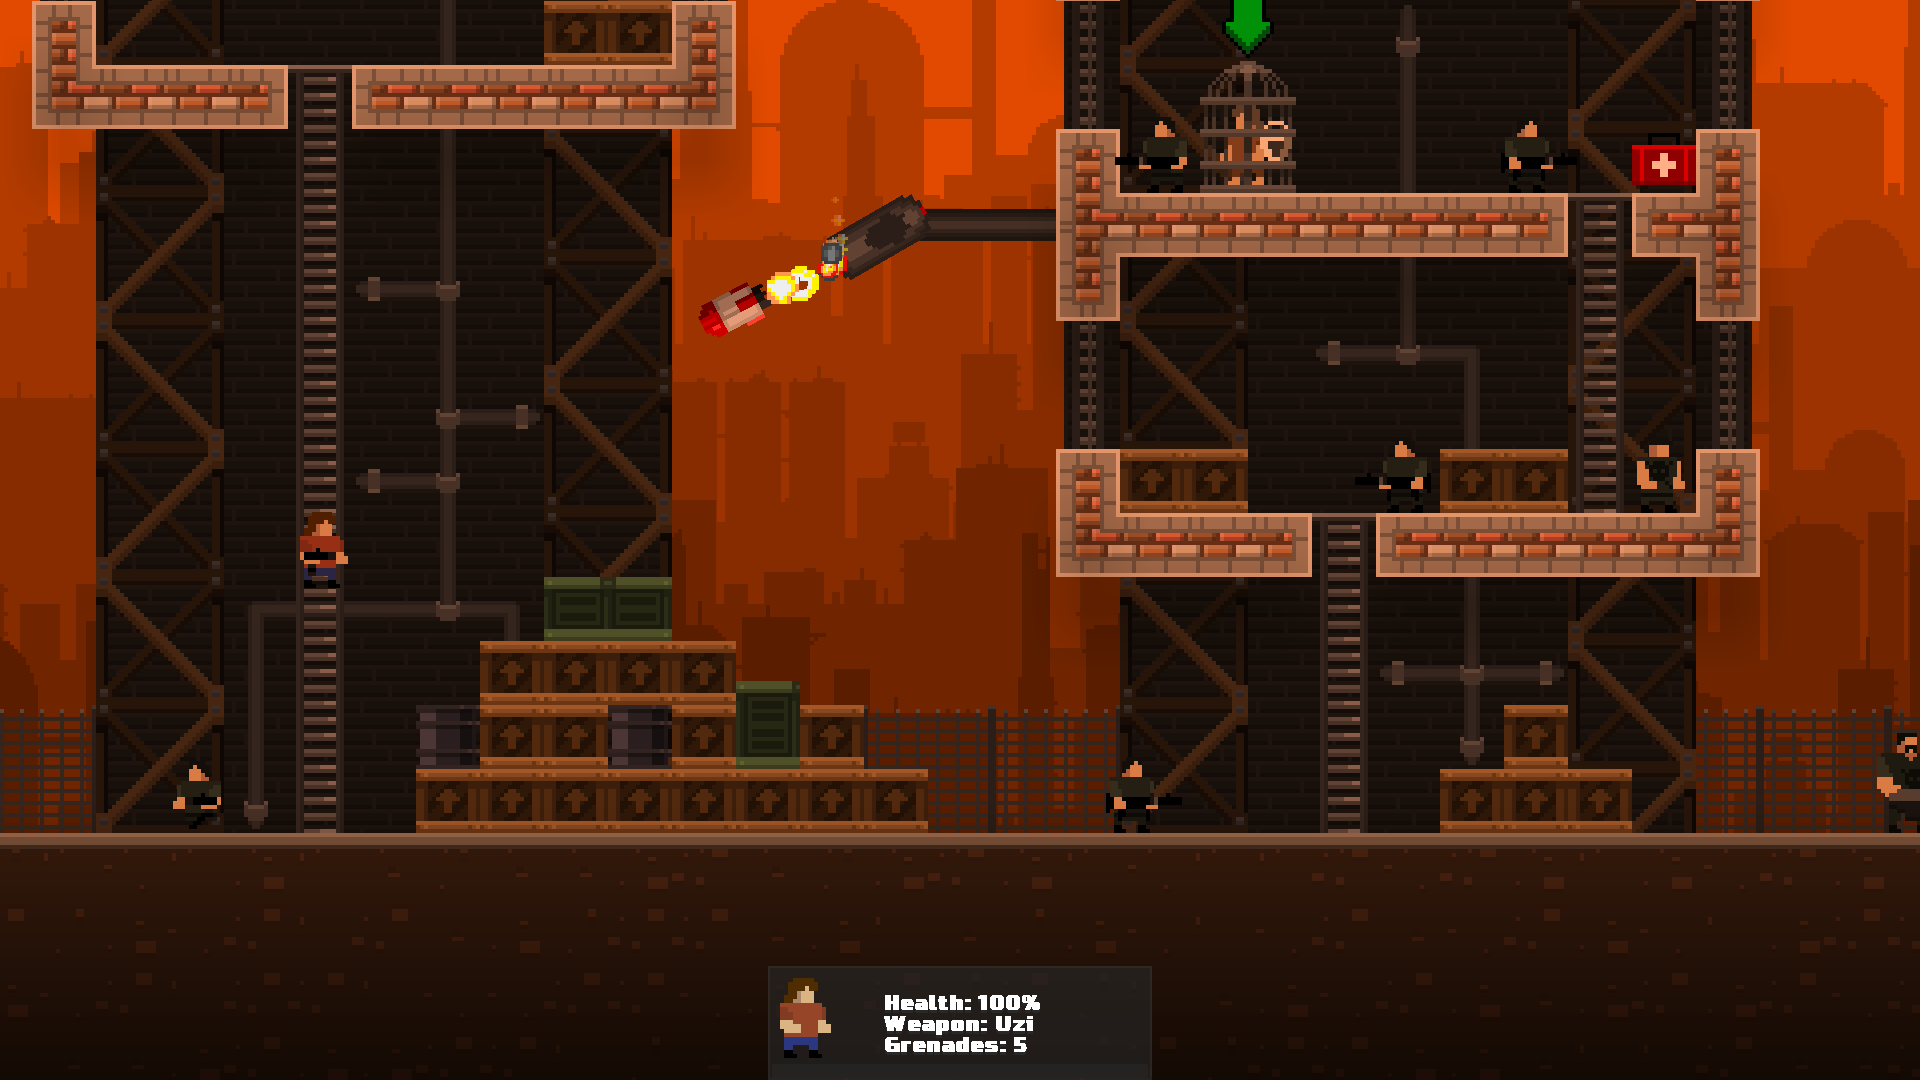 Awesome prison level with rockets.